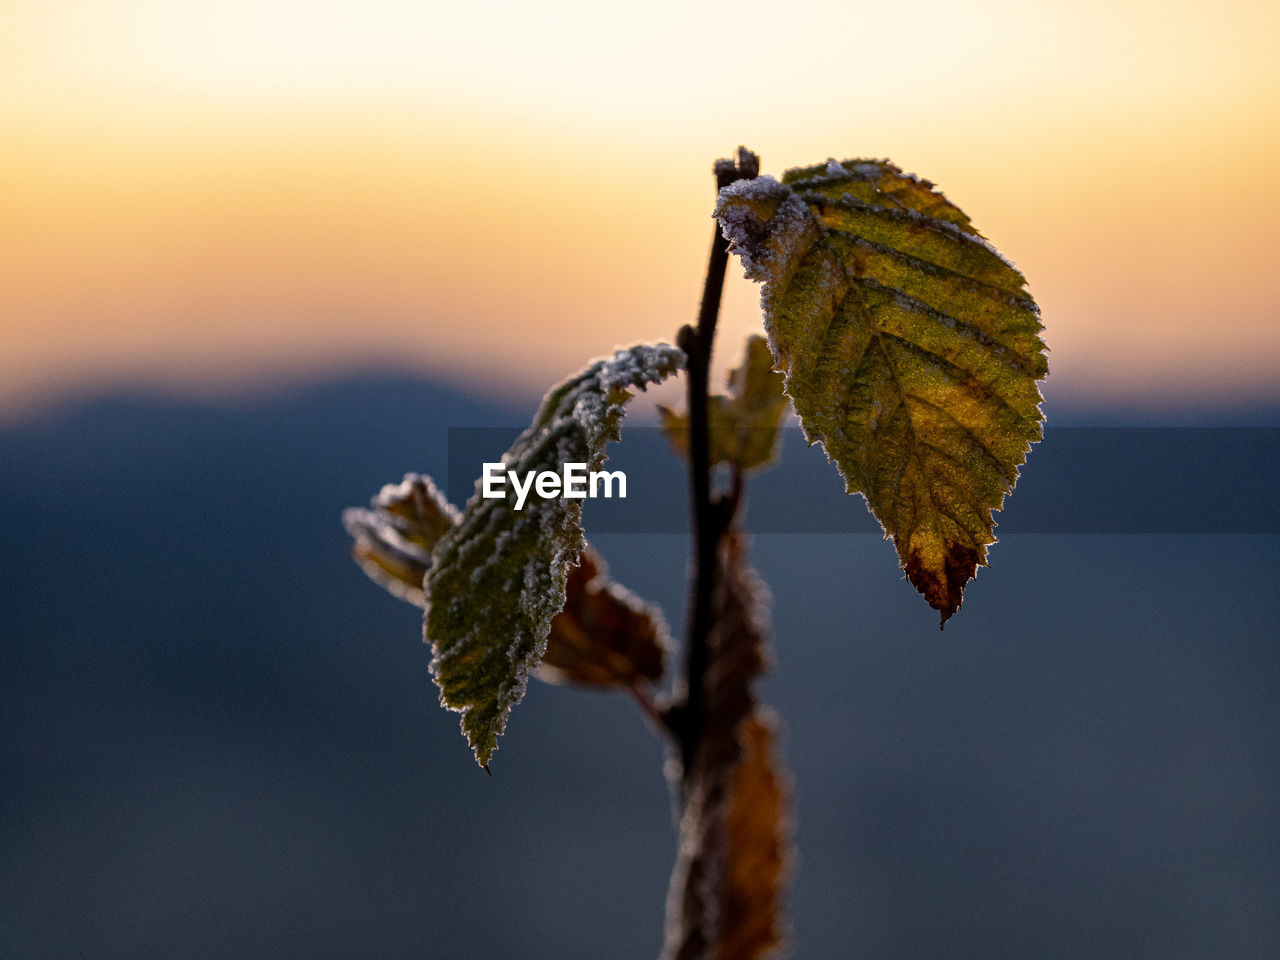 Close-up of dried leaves on plant against sky at sunset